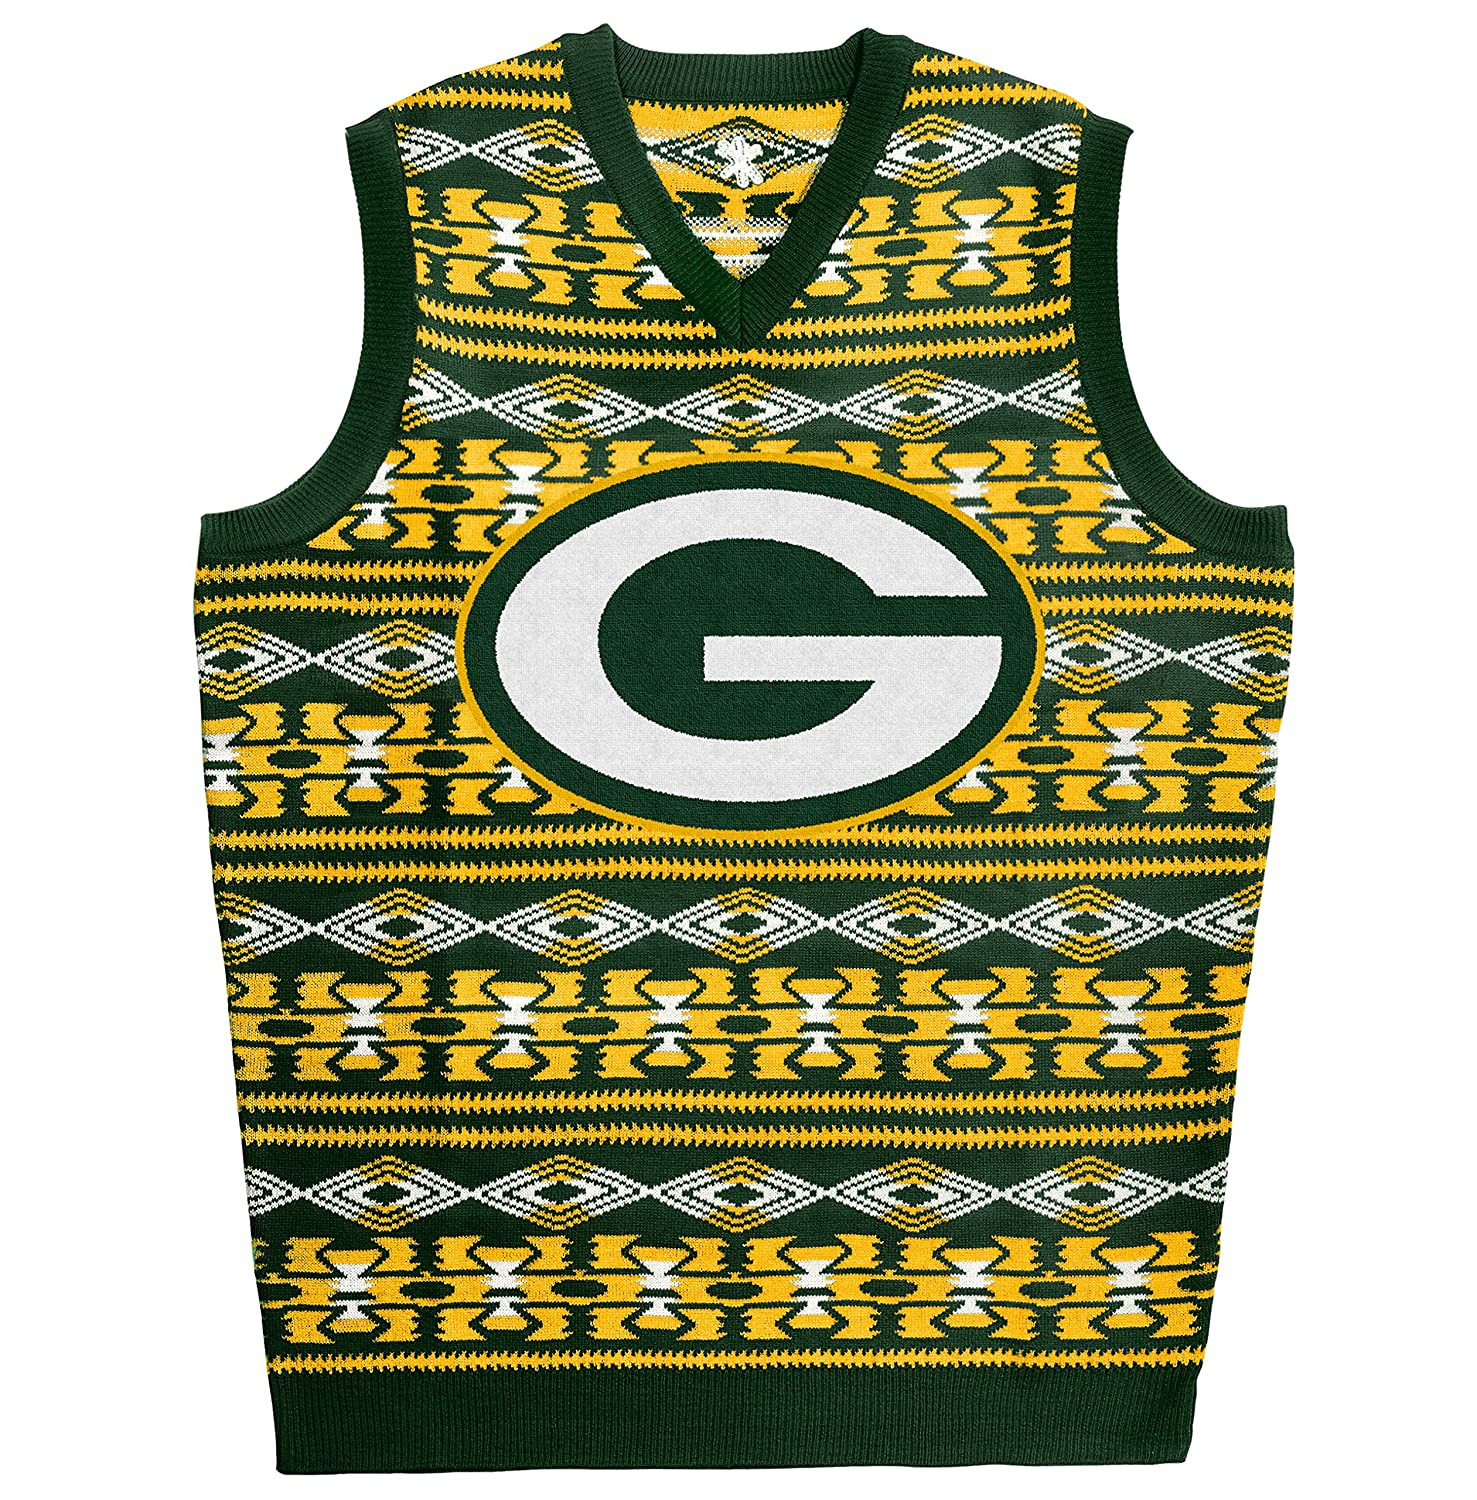 Amazon.com : KLEW NFL Ugly Sweater Vest : Sports & Outdoors